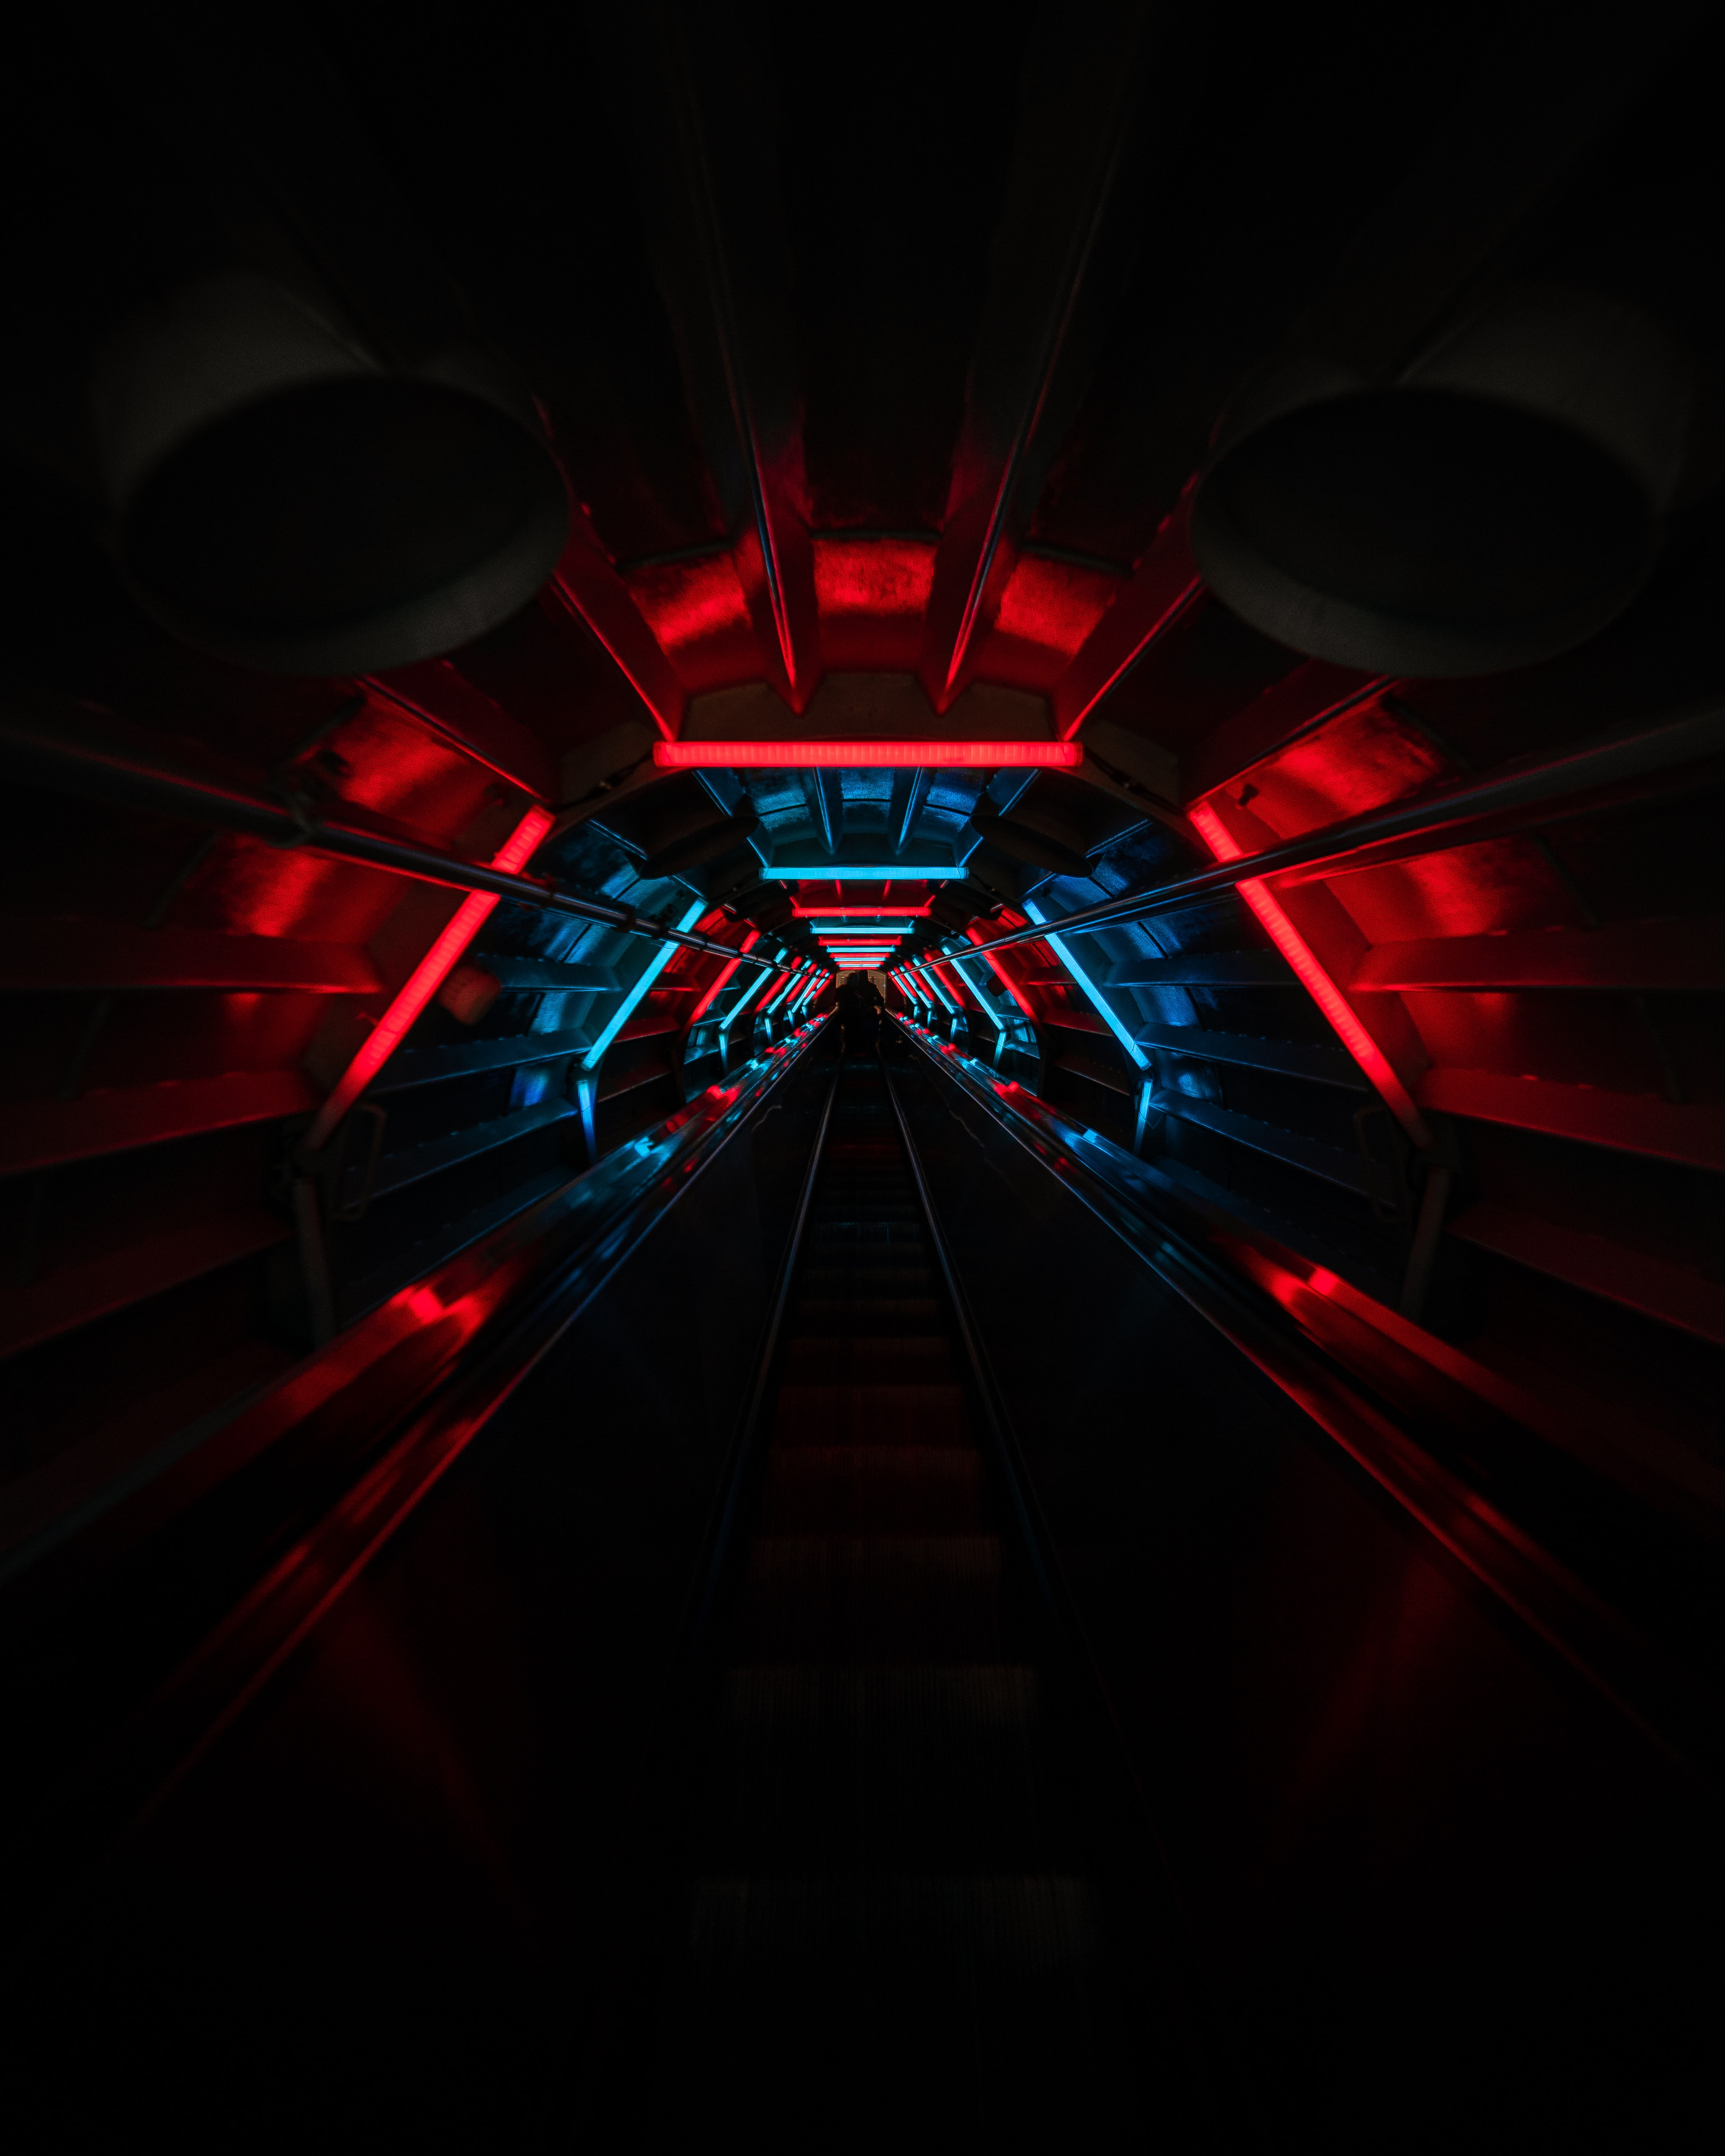 66067 download wallpaper Dark, Tunnel, Neon, Glow, Stairs, Ladder screensavers and pictures for free